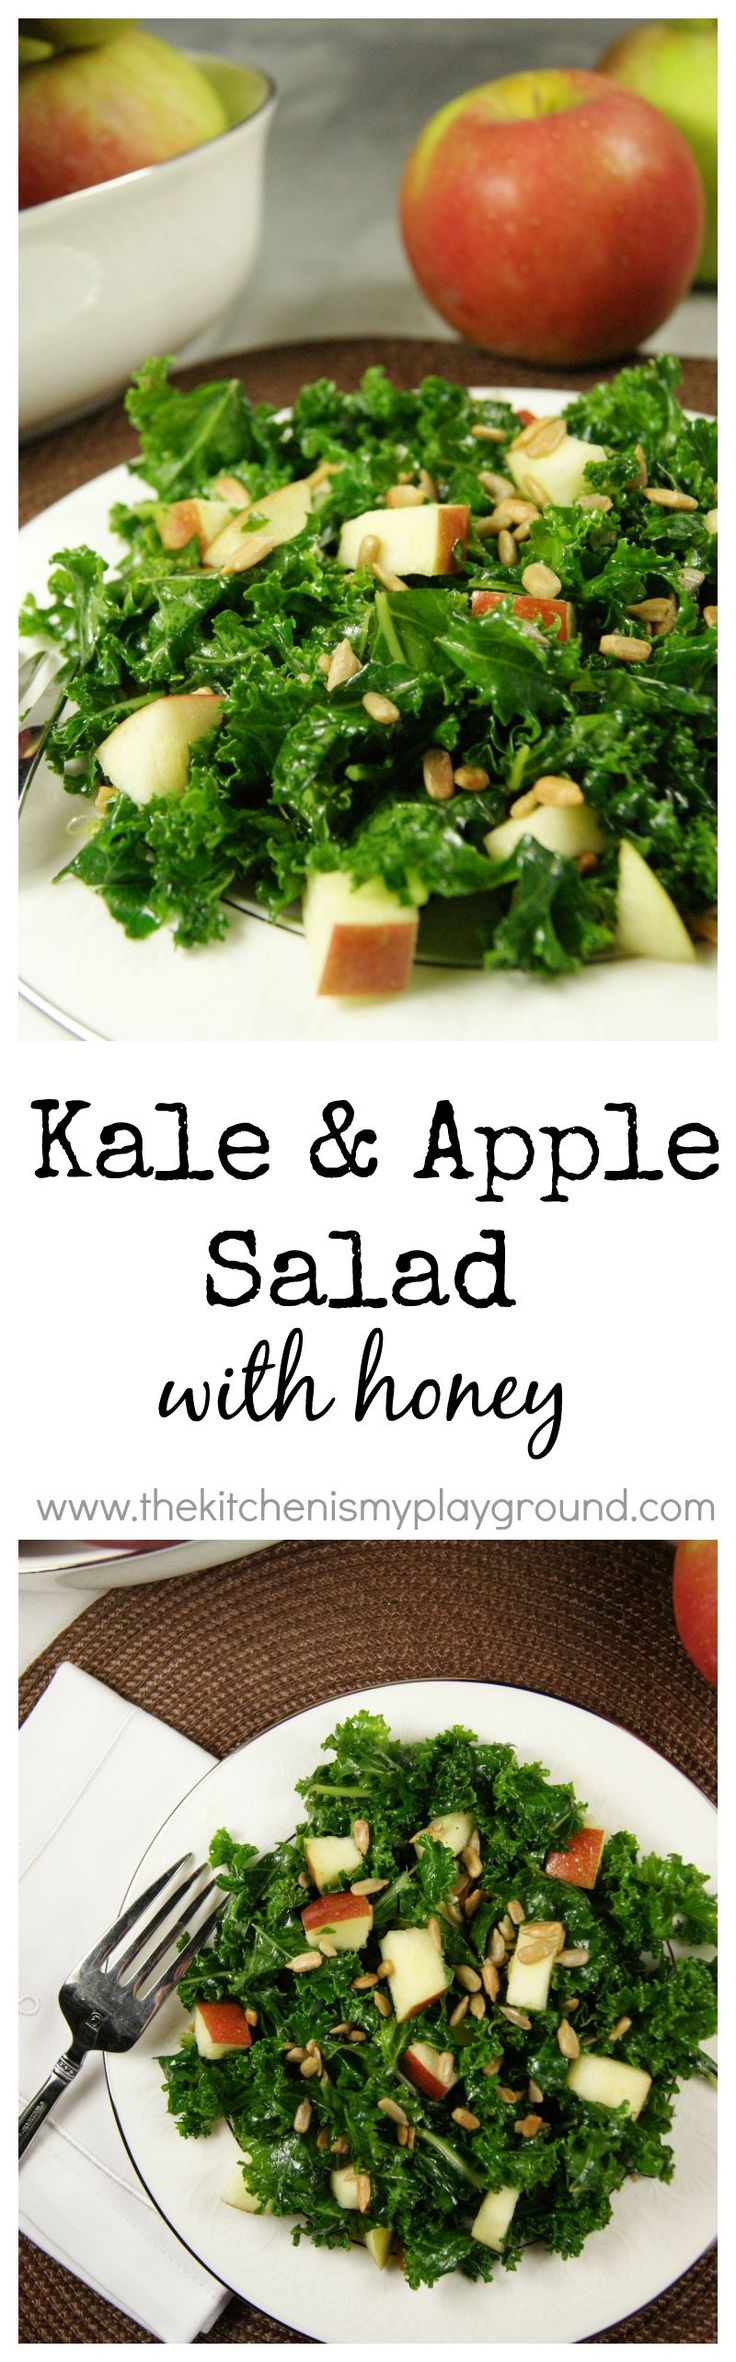 Kale & Apple Salad with Honey ... with a special preparation method to tenderize the kale. www.thekitchenismyplayground.com